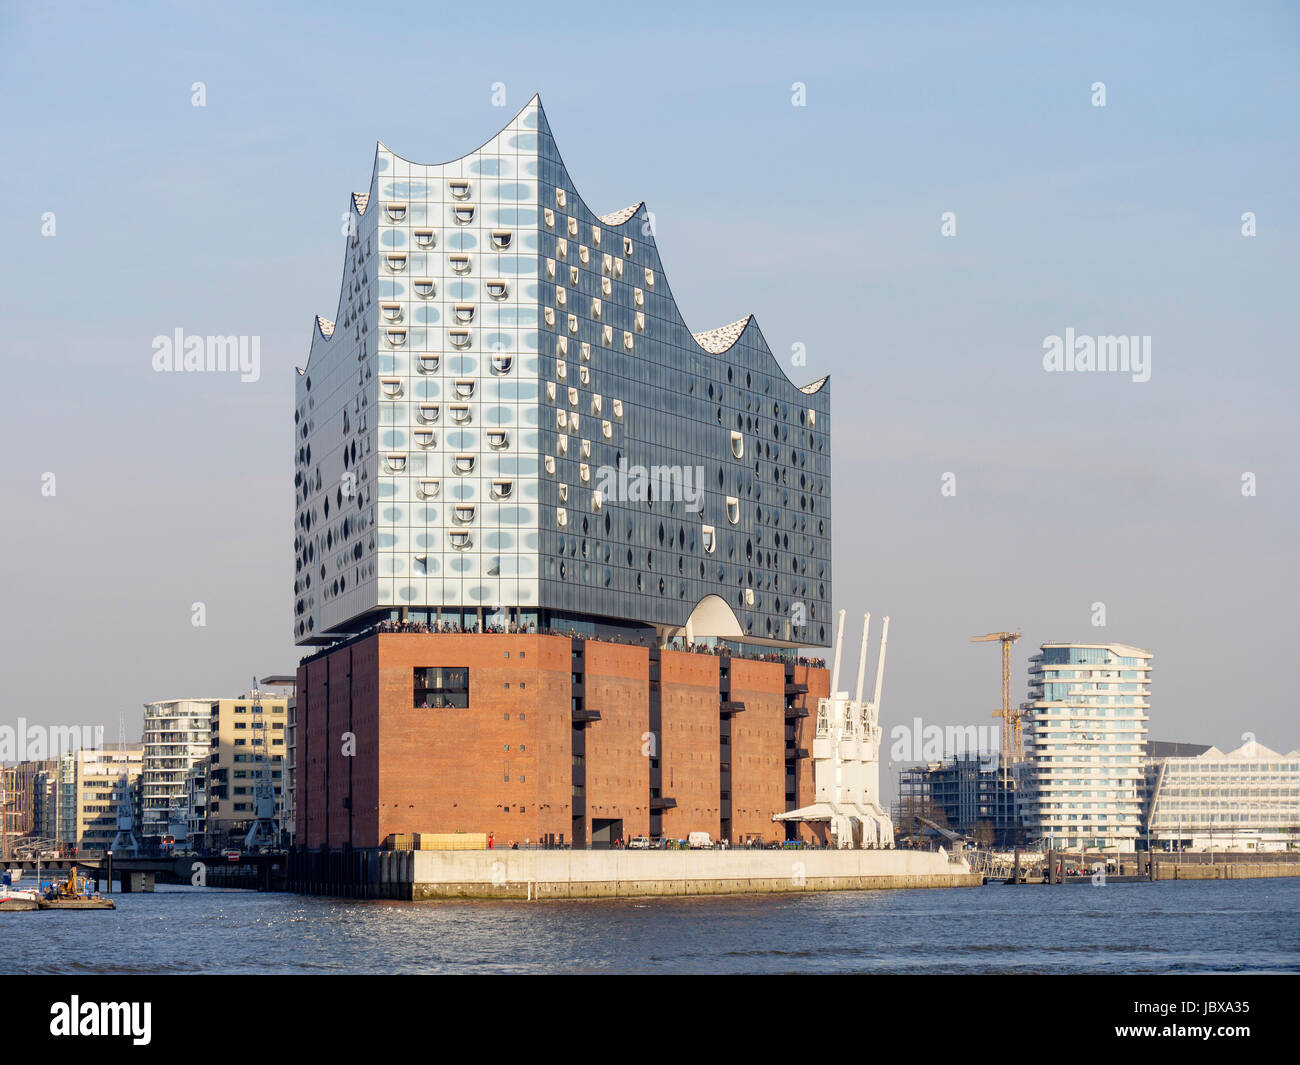 Elbphilharmonie, Marco Polo Tower and Unilever-House, Hamburg, Germany - Stock Image